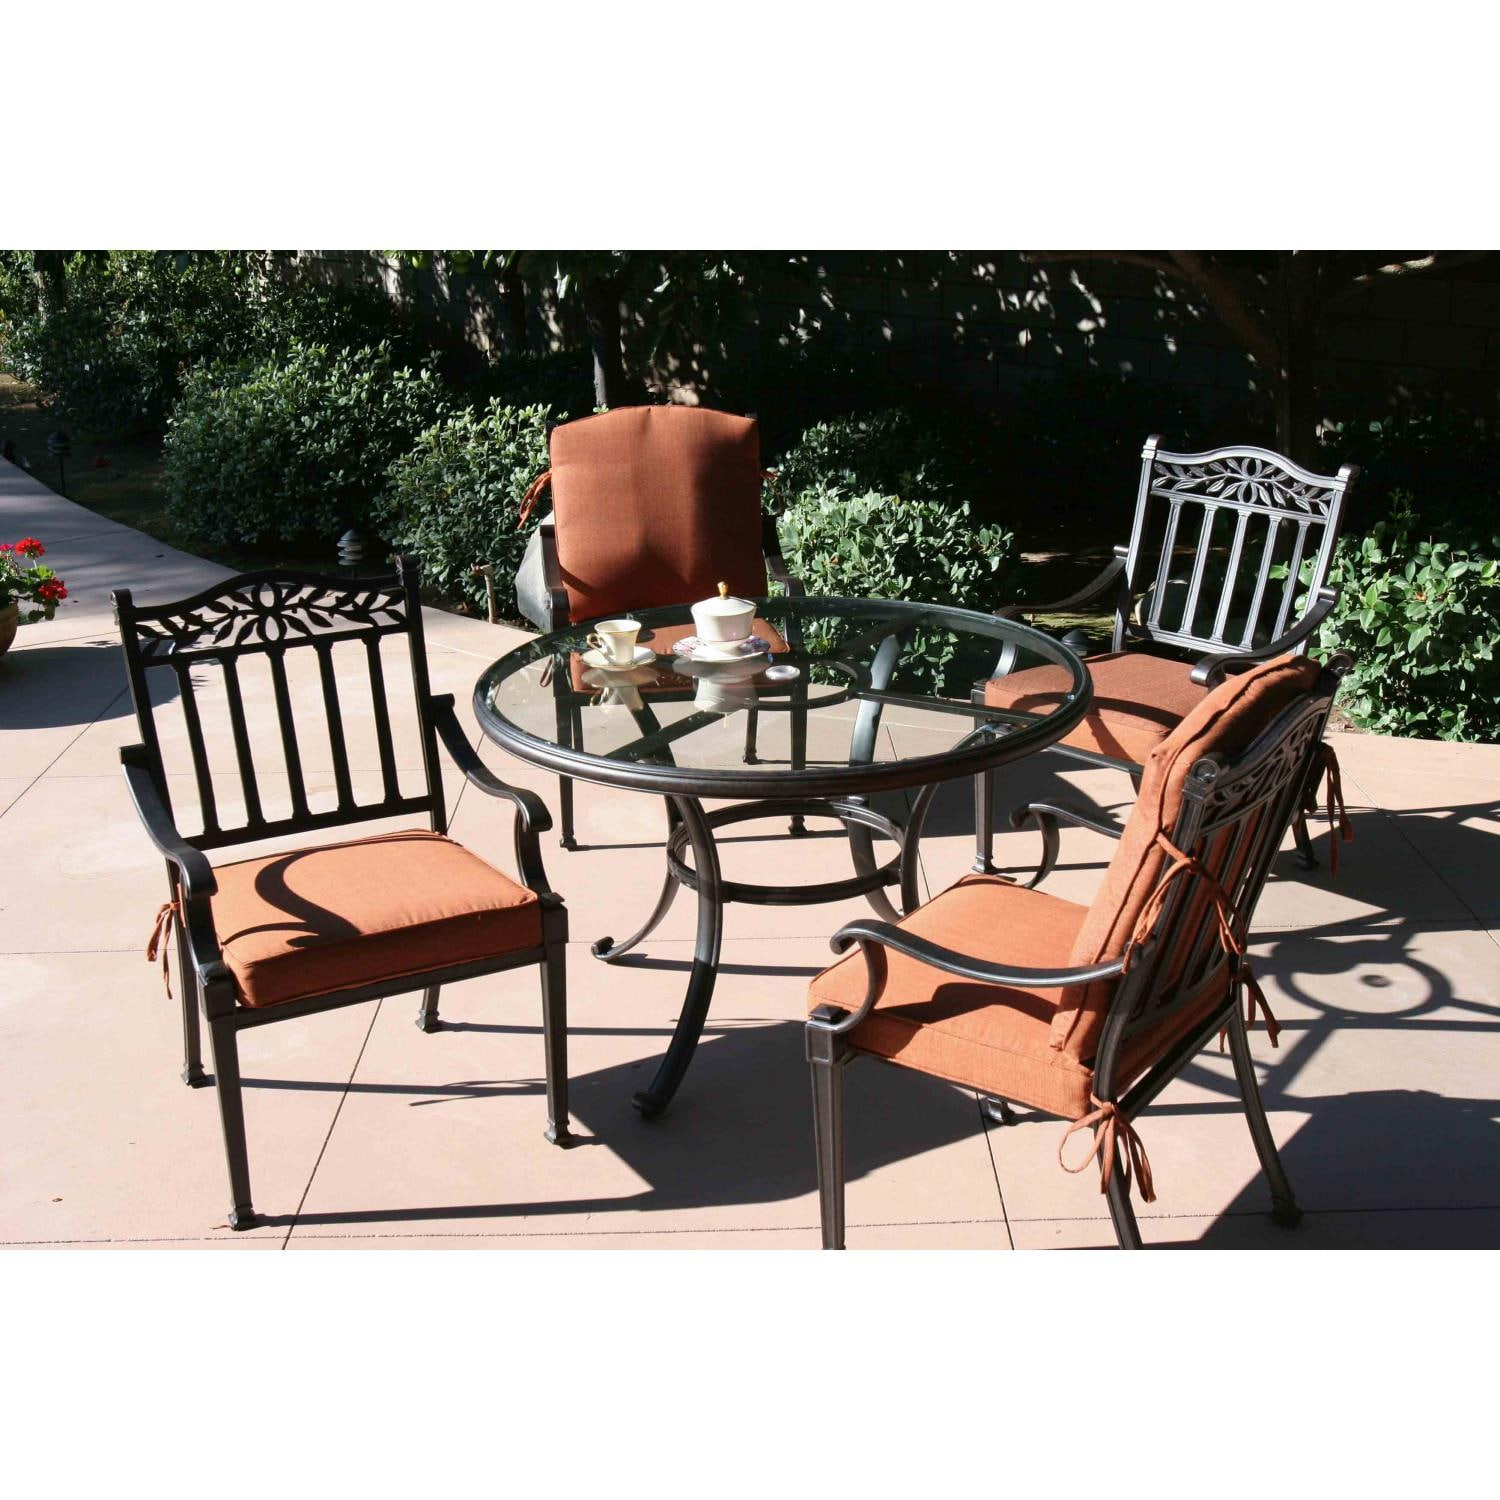 Darlee Charleston 5 Piece Cast Aluminum Patio Dining Set With Glass Top Table